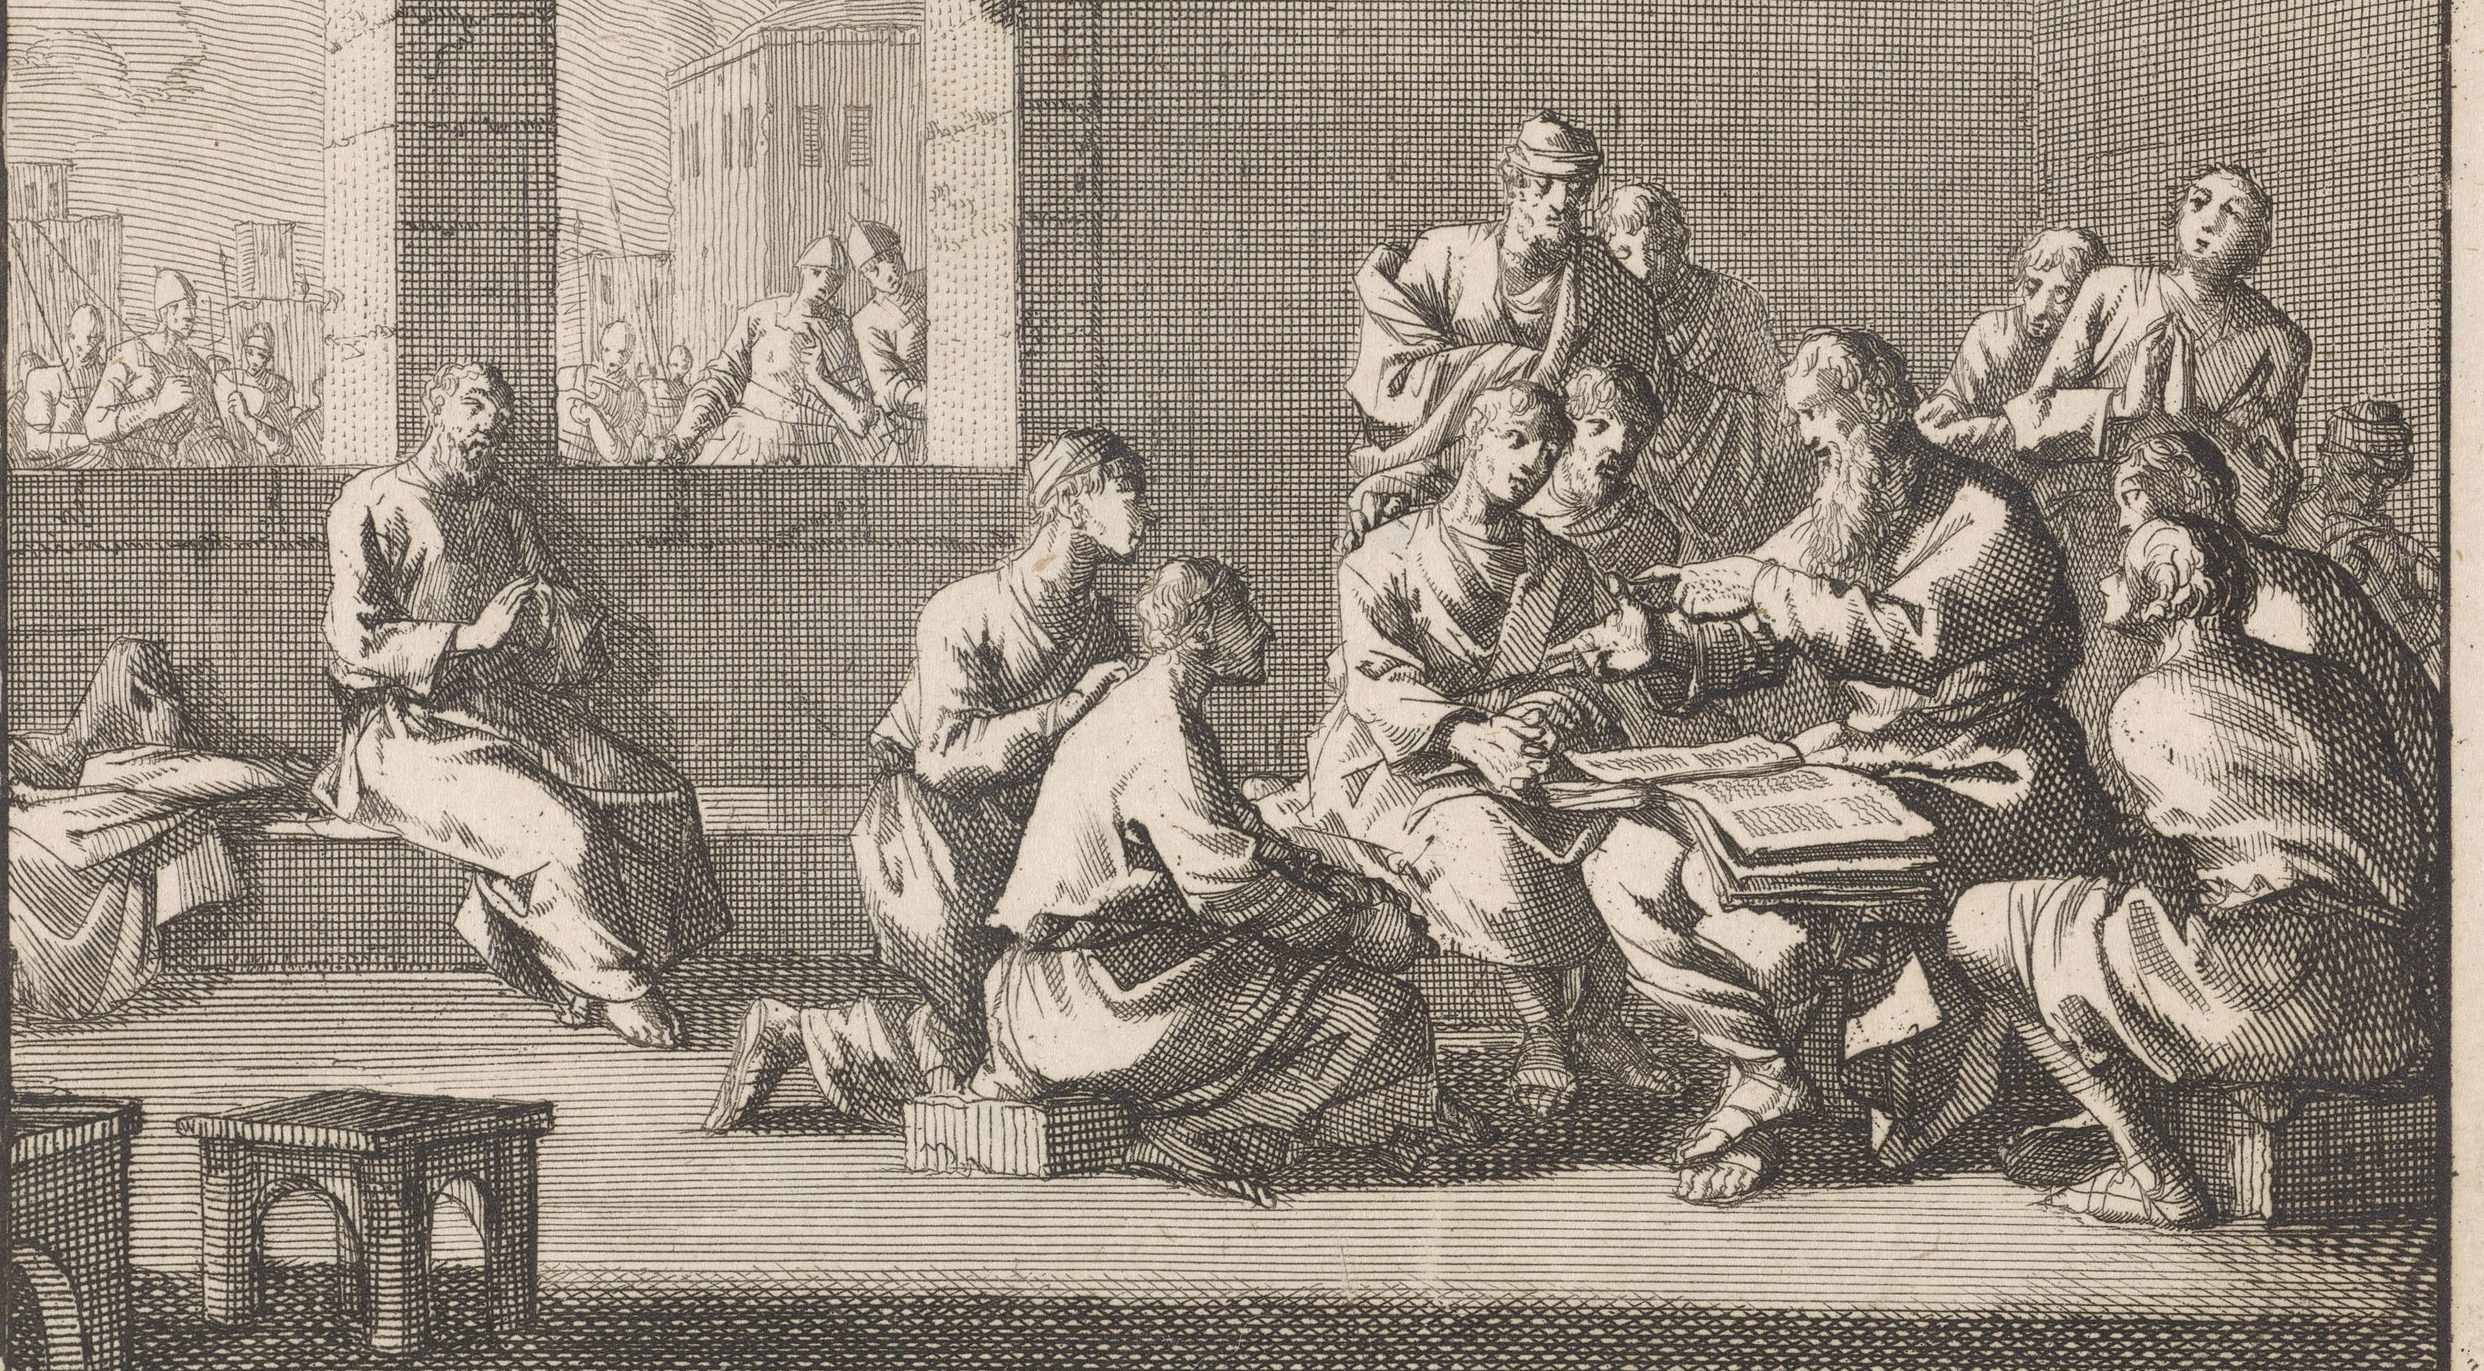 Origen Teaching Theological Students, detail, Jan Luyken, c. 1700 (courtesy of wikimedia commons)